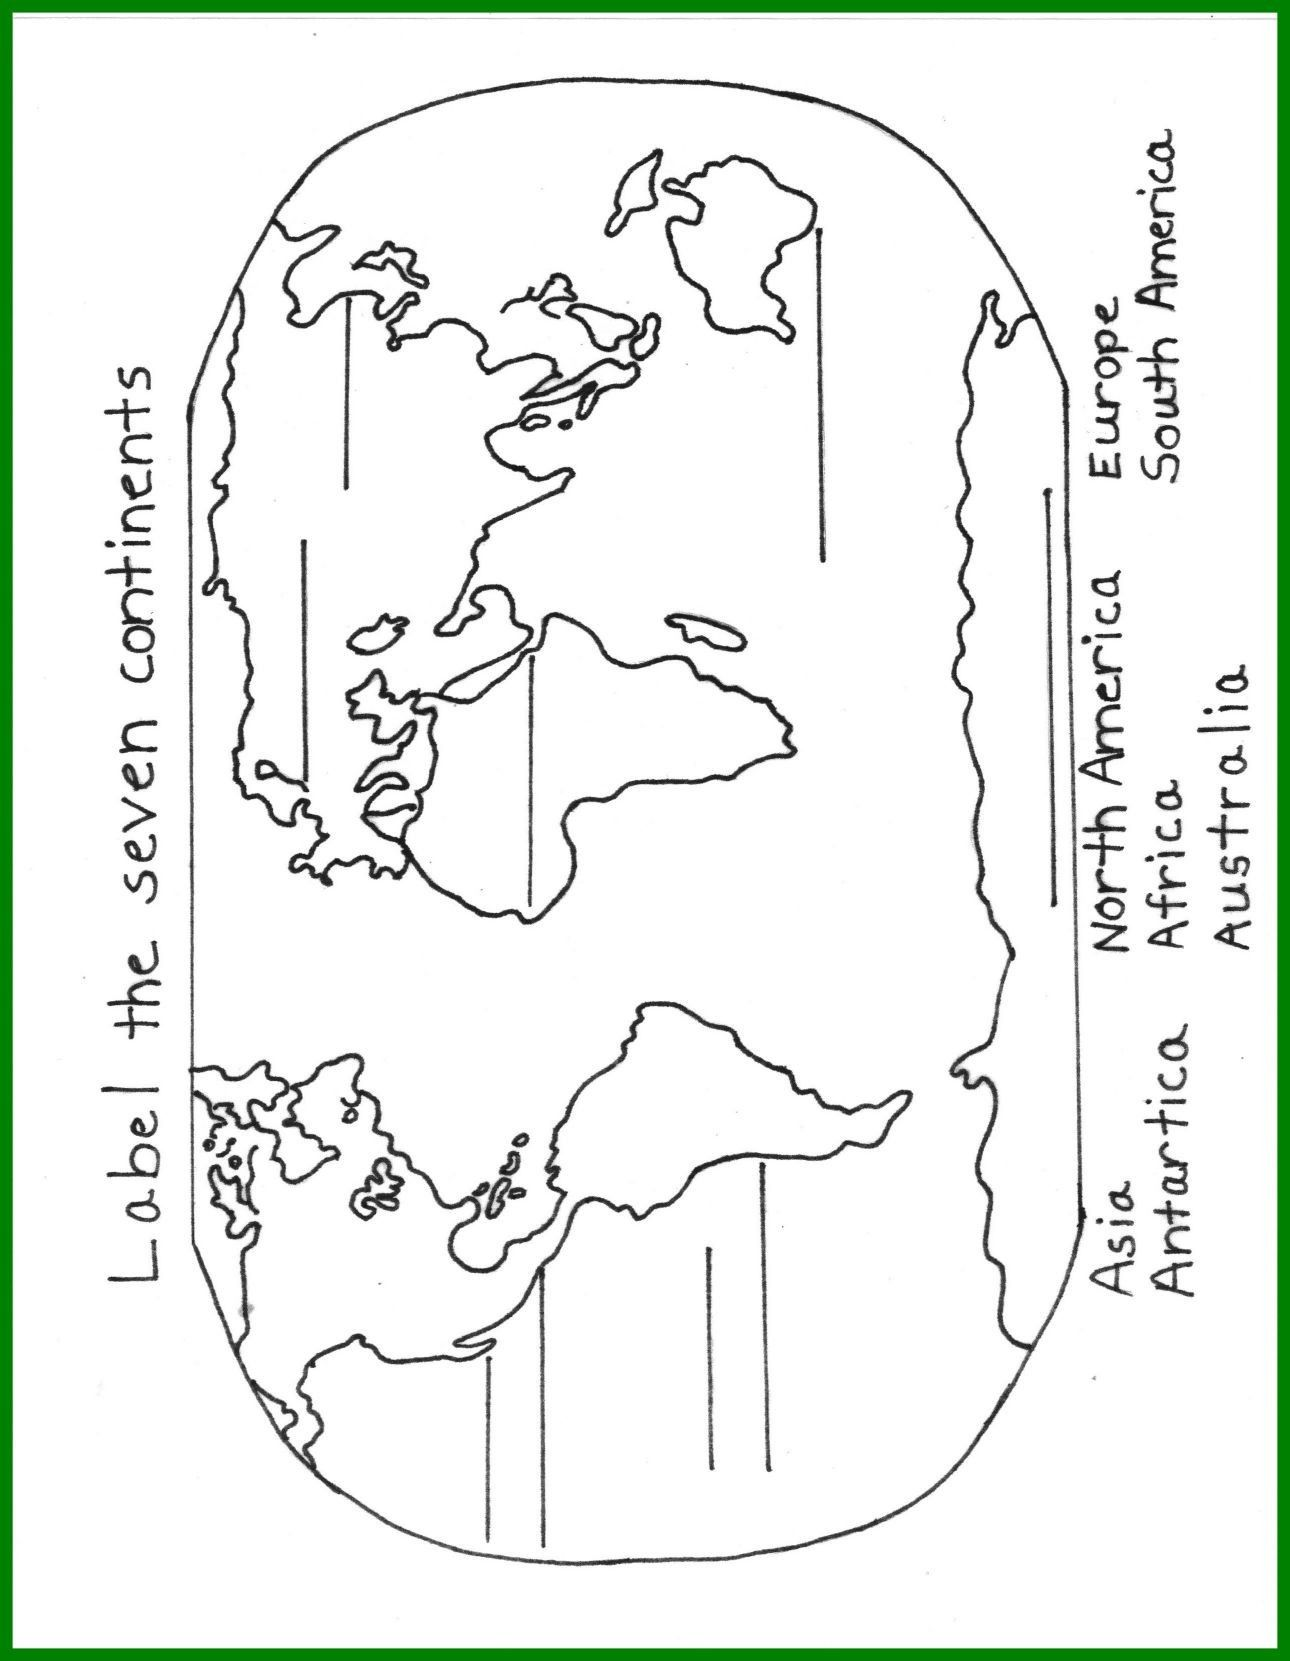 Continents Coloring Page 7 Continents Coloring Page Wiim